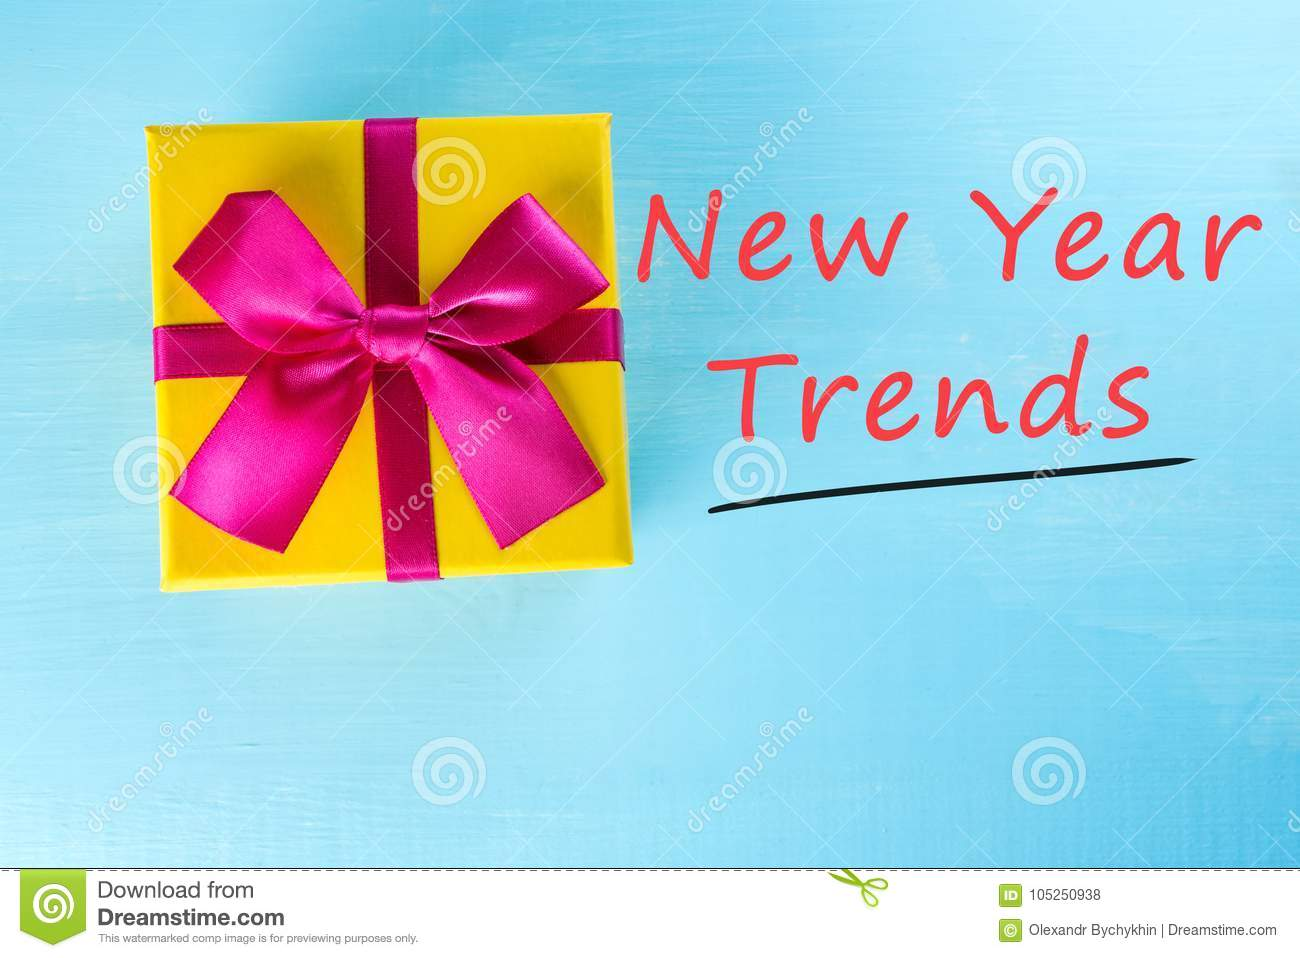 New Year Trends Yellow Gift Box Onblue Table As Natural Background Christmas Or New